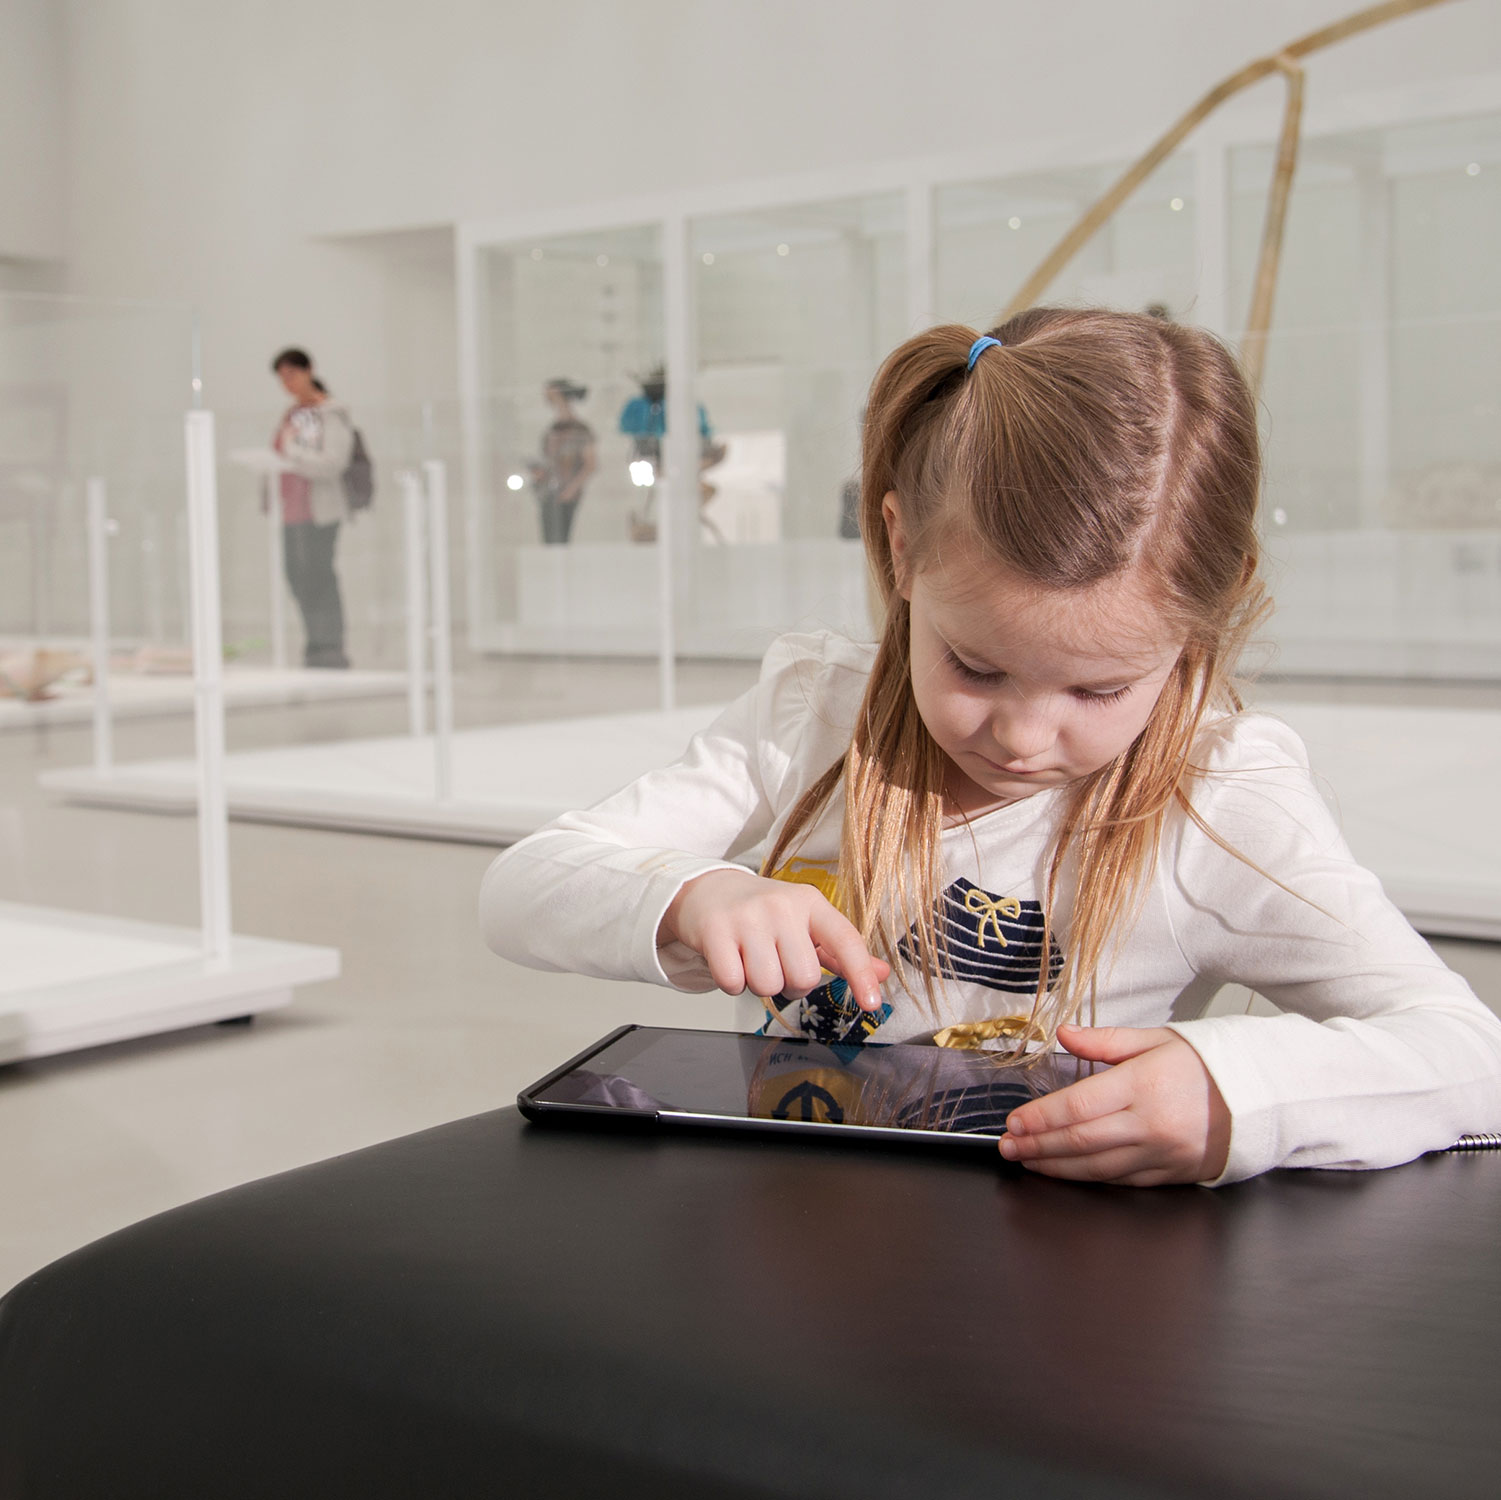 A young girl plays on a tablet in an art gallery.